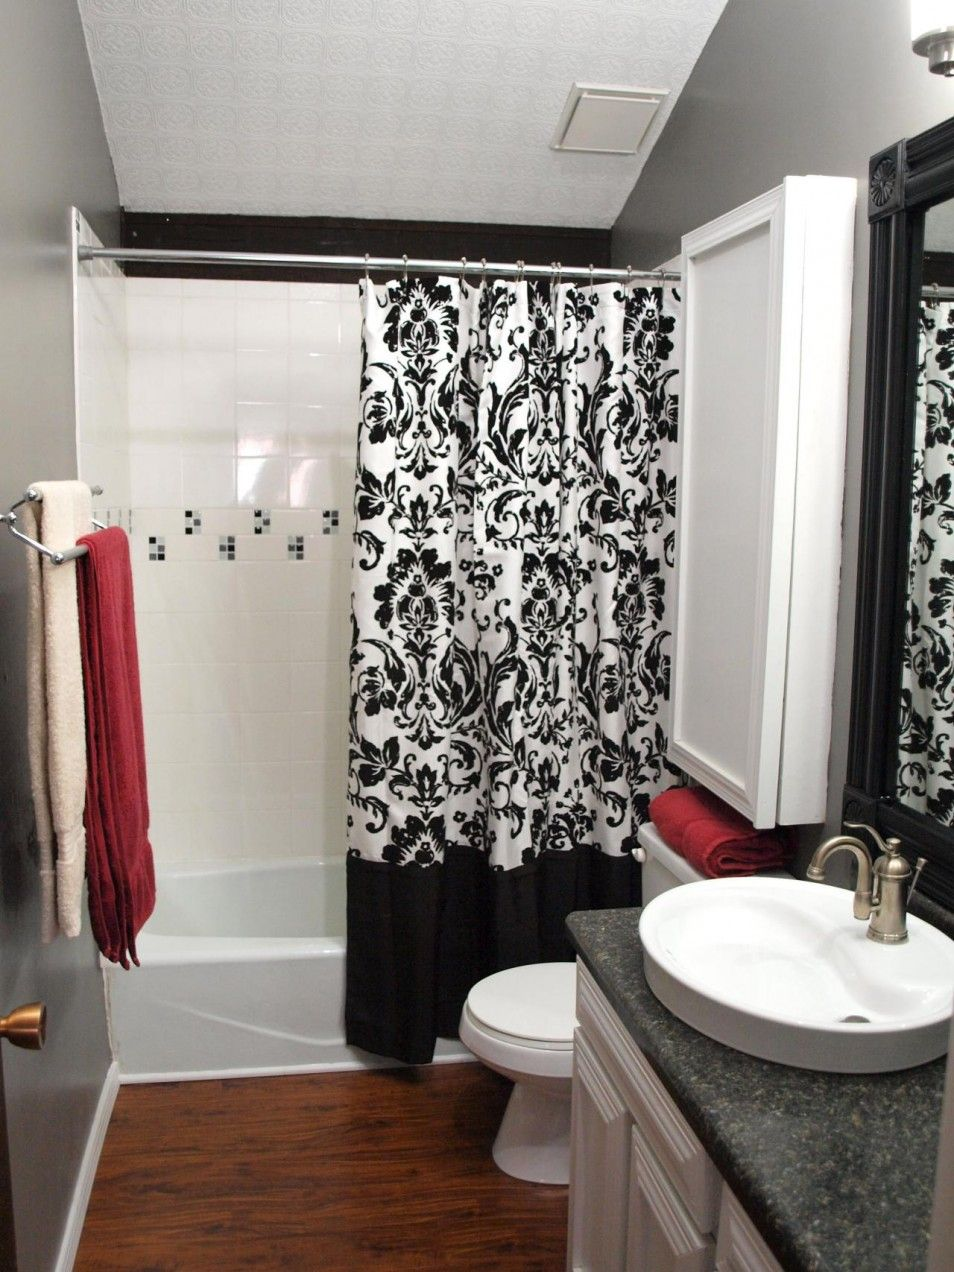 The Beauty Black And White Bathroom Decor Ideas With Modern Black